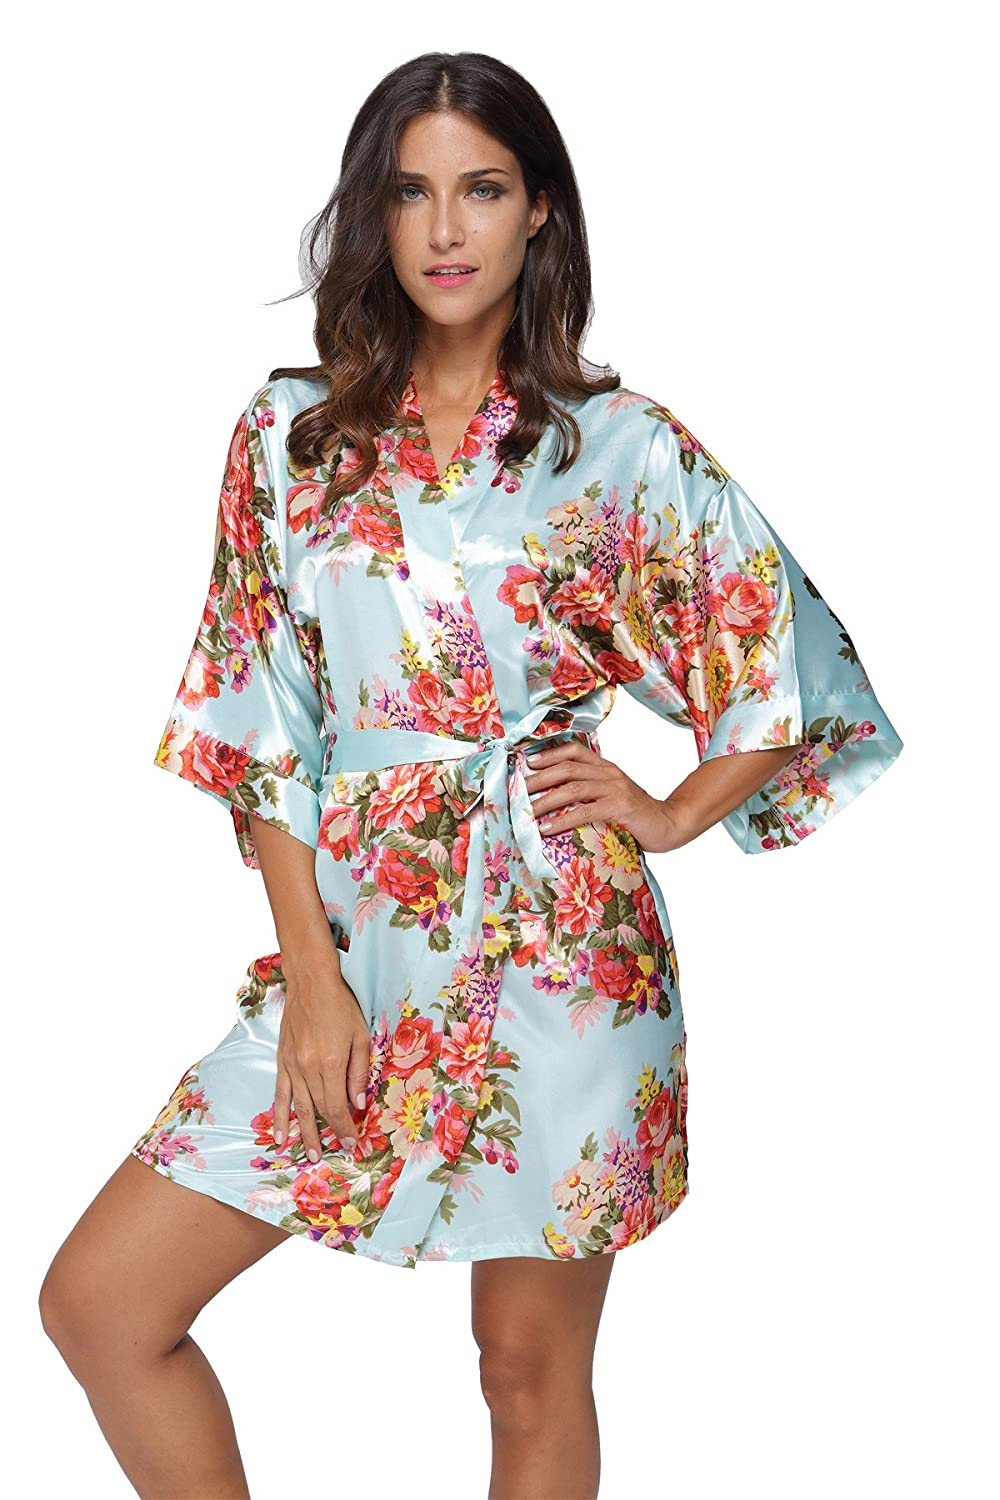 675daf3cf4 KimonoDeals Women s dept Satin Short Floral Kimono Robe for Wedding Party  at Amazon Women s Clothing store